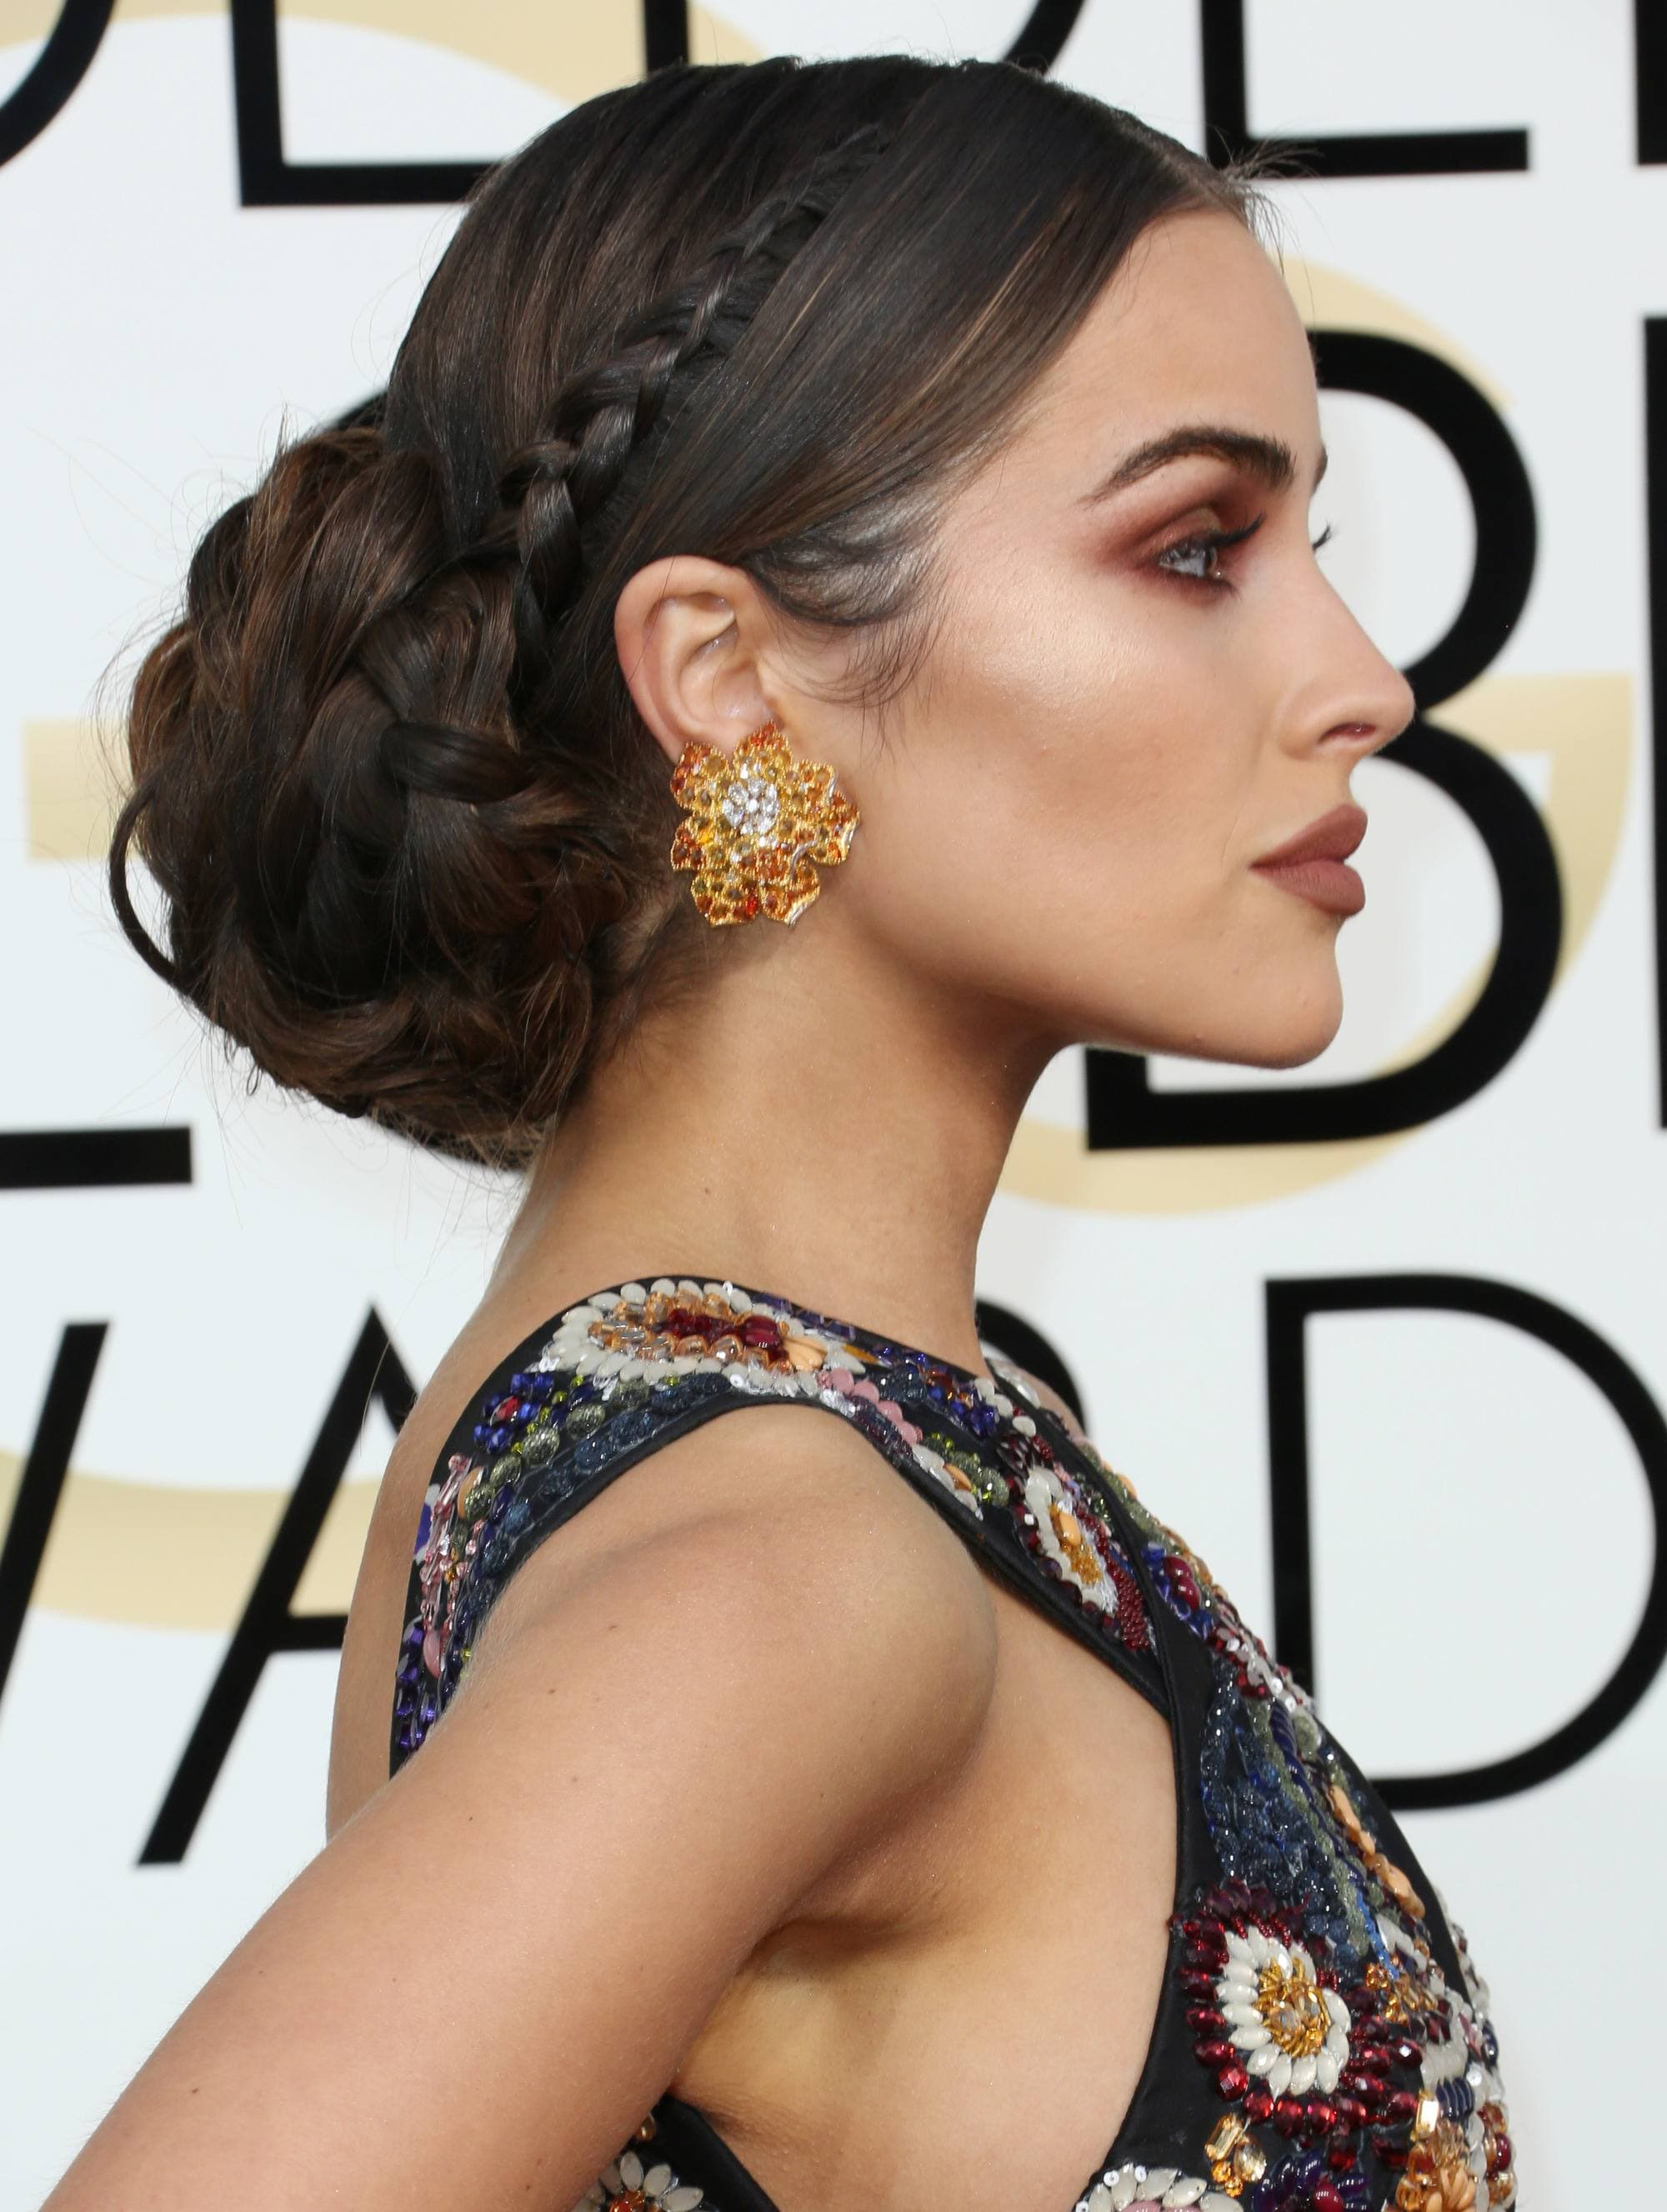 greek hairstyles: side shot of oliviia culpo with braided low bun hairstyle